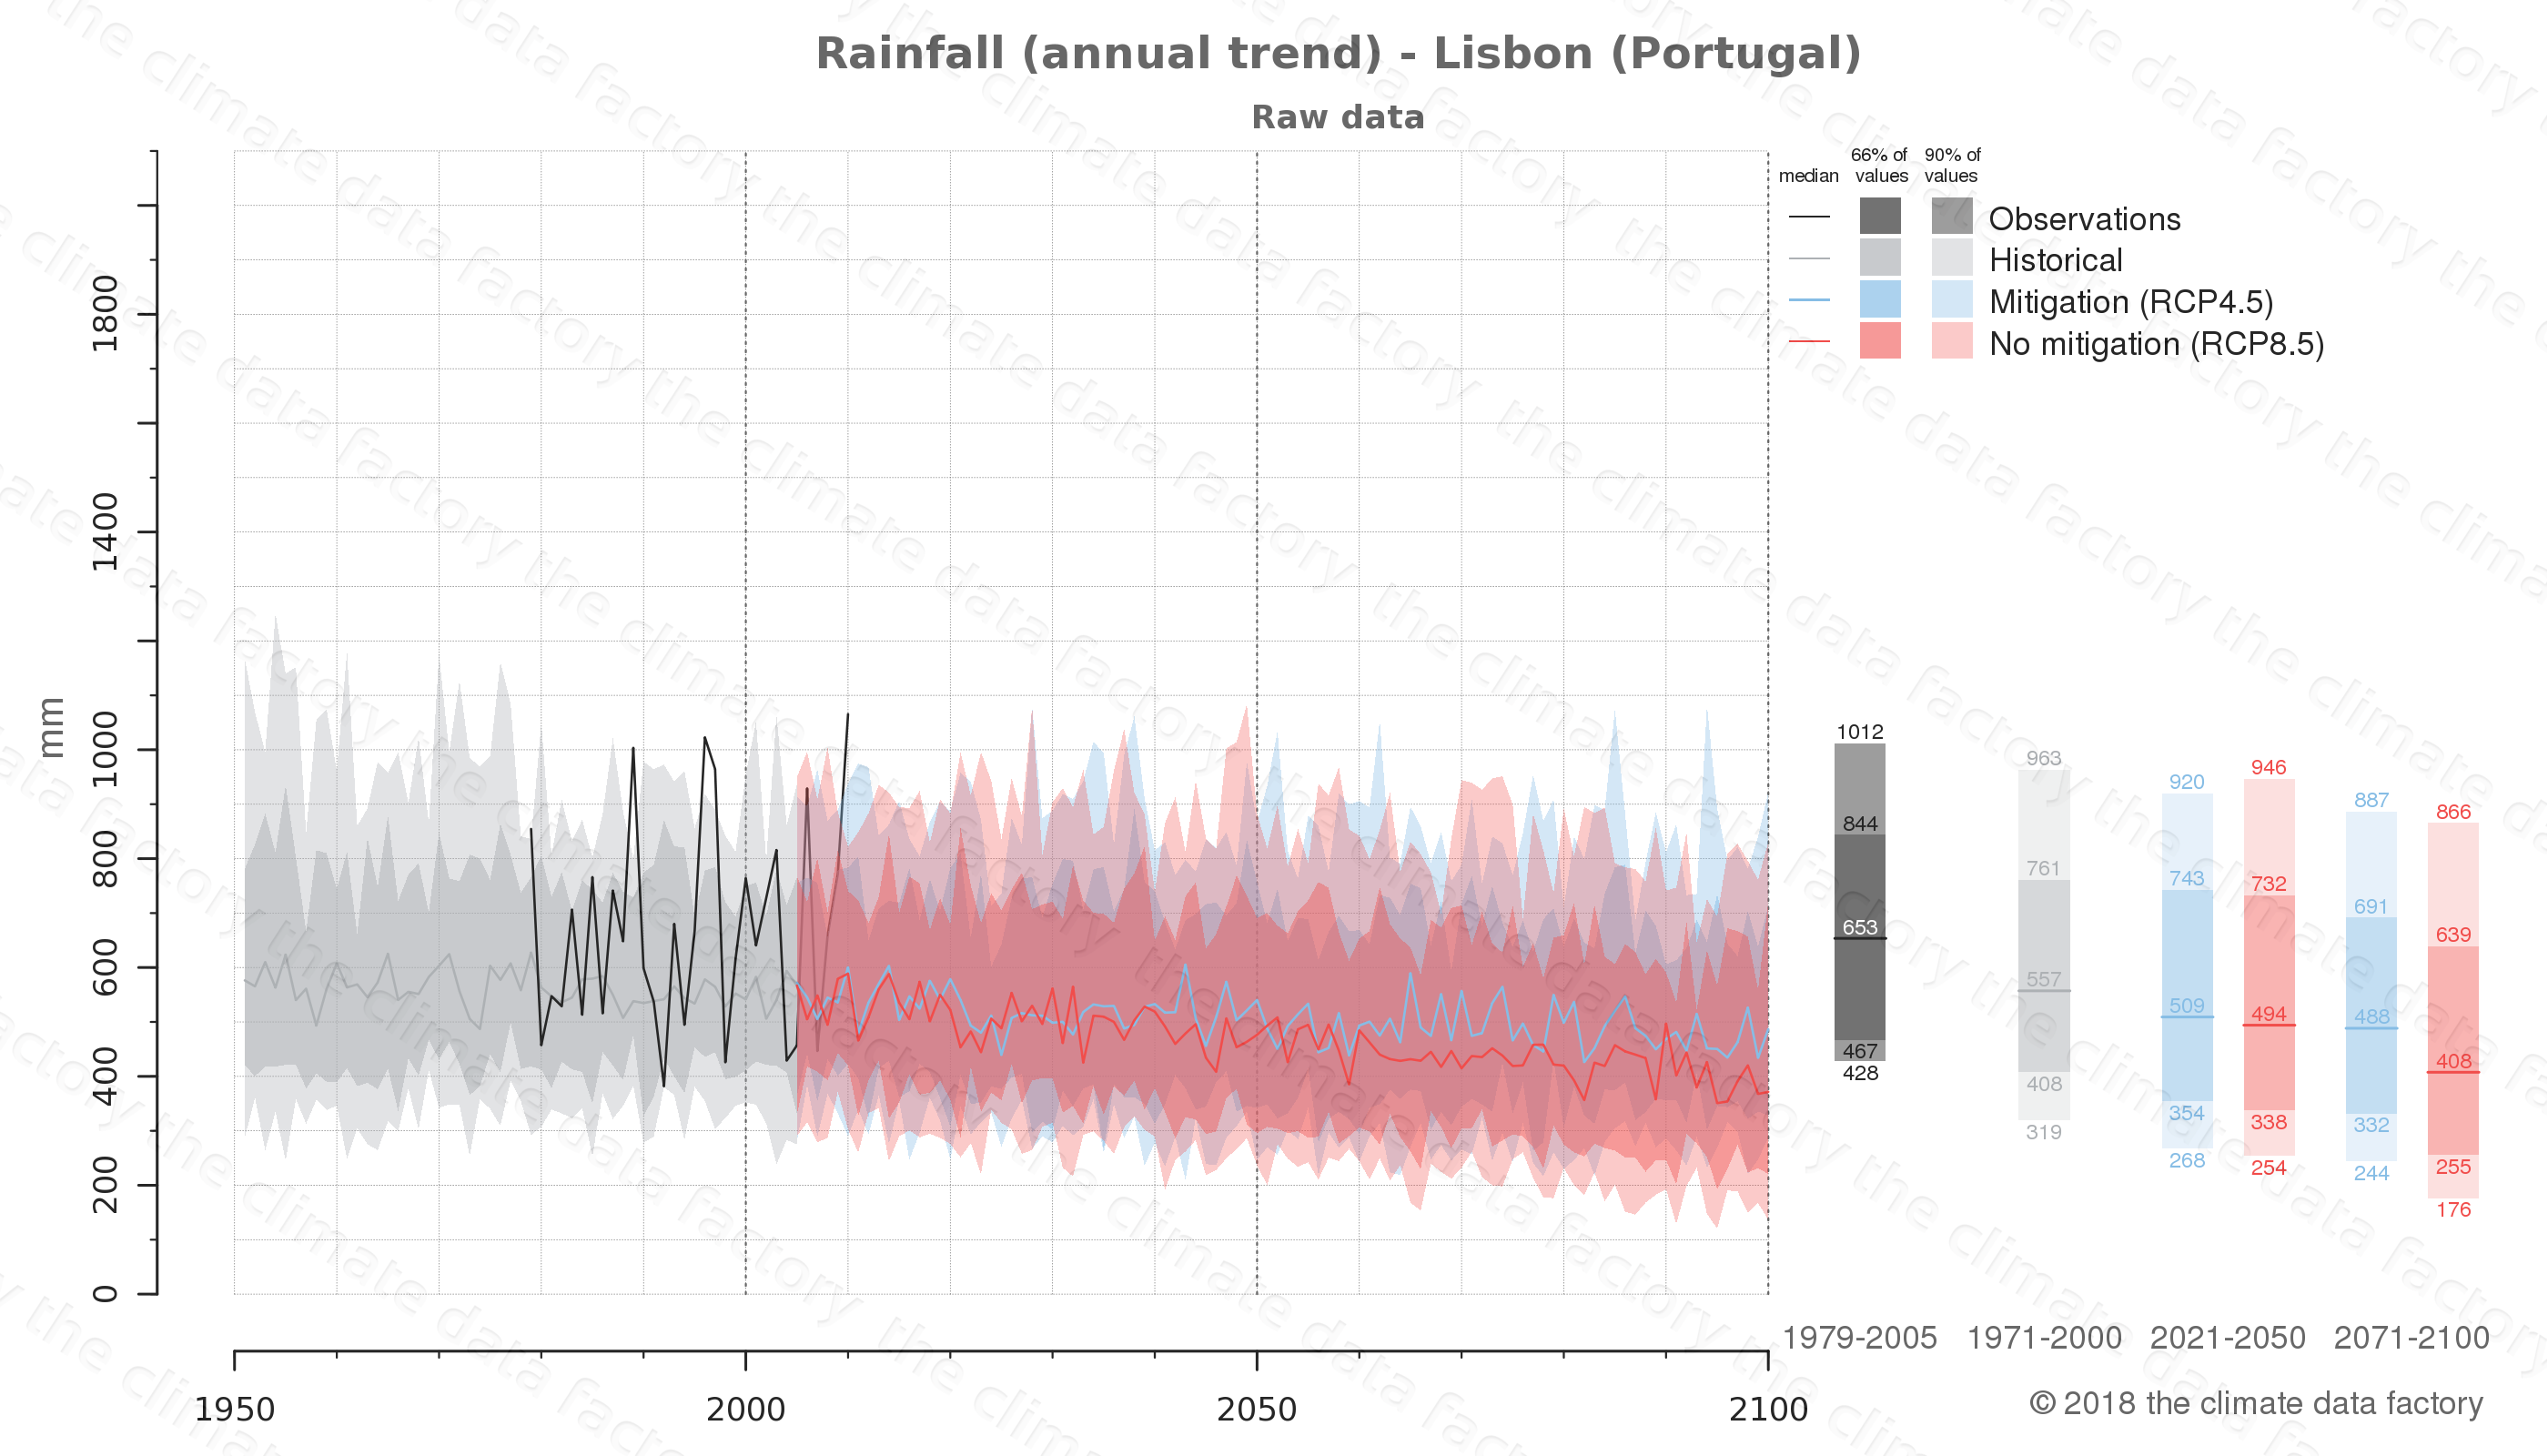 climate change data policy adaptation climate graph city data rainfall lisbon portugal